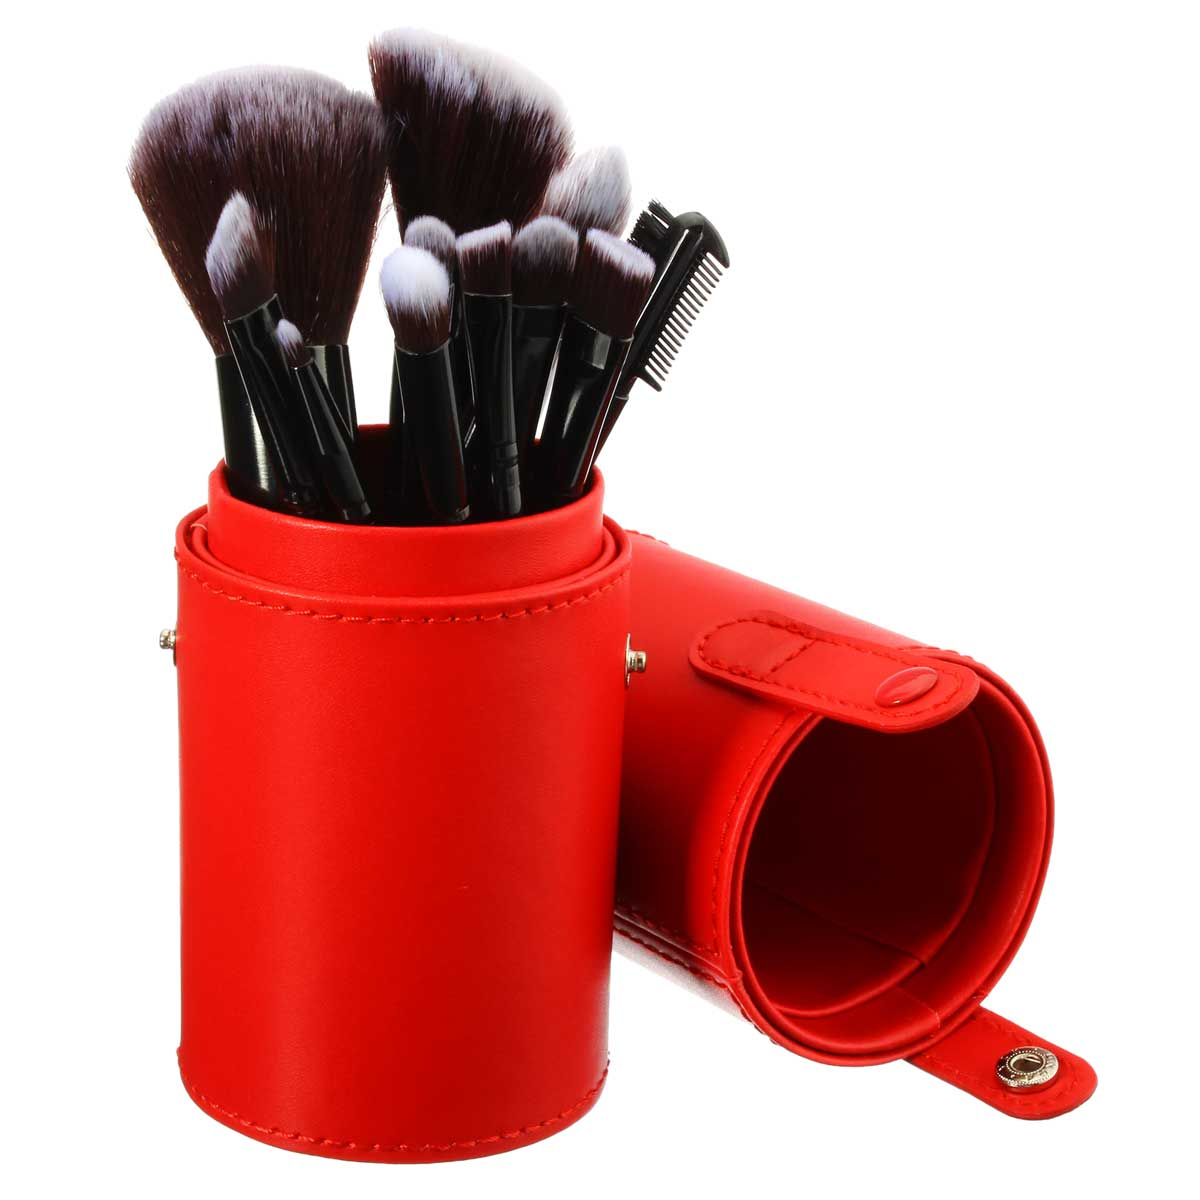 1pcs Empty Portable Round Makeup Brush Pen Holder Cosmetic Tool PU Leather Cup Container Pink Red Solid Colors 4 Optional Case new empty portable makeup brush round pen holder cosmetic tool pu leather cup container solid colors 6 optional case v2 tf